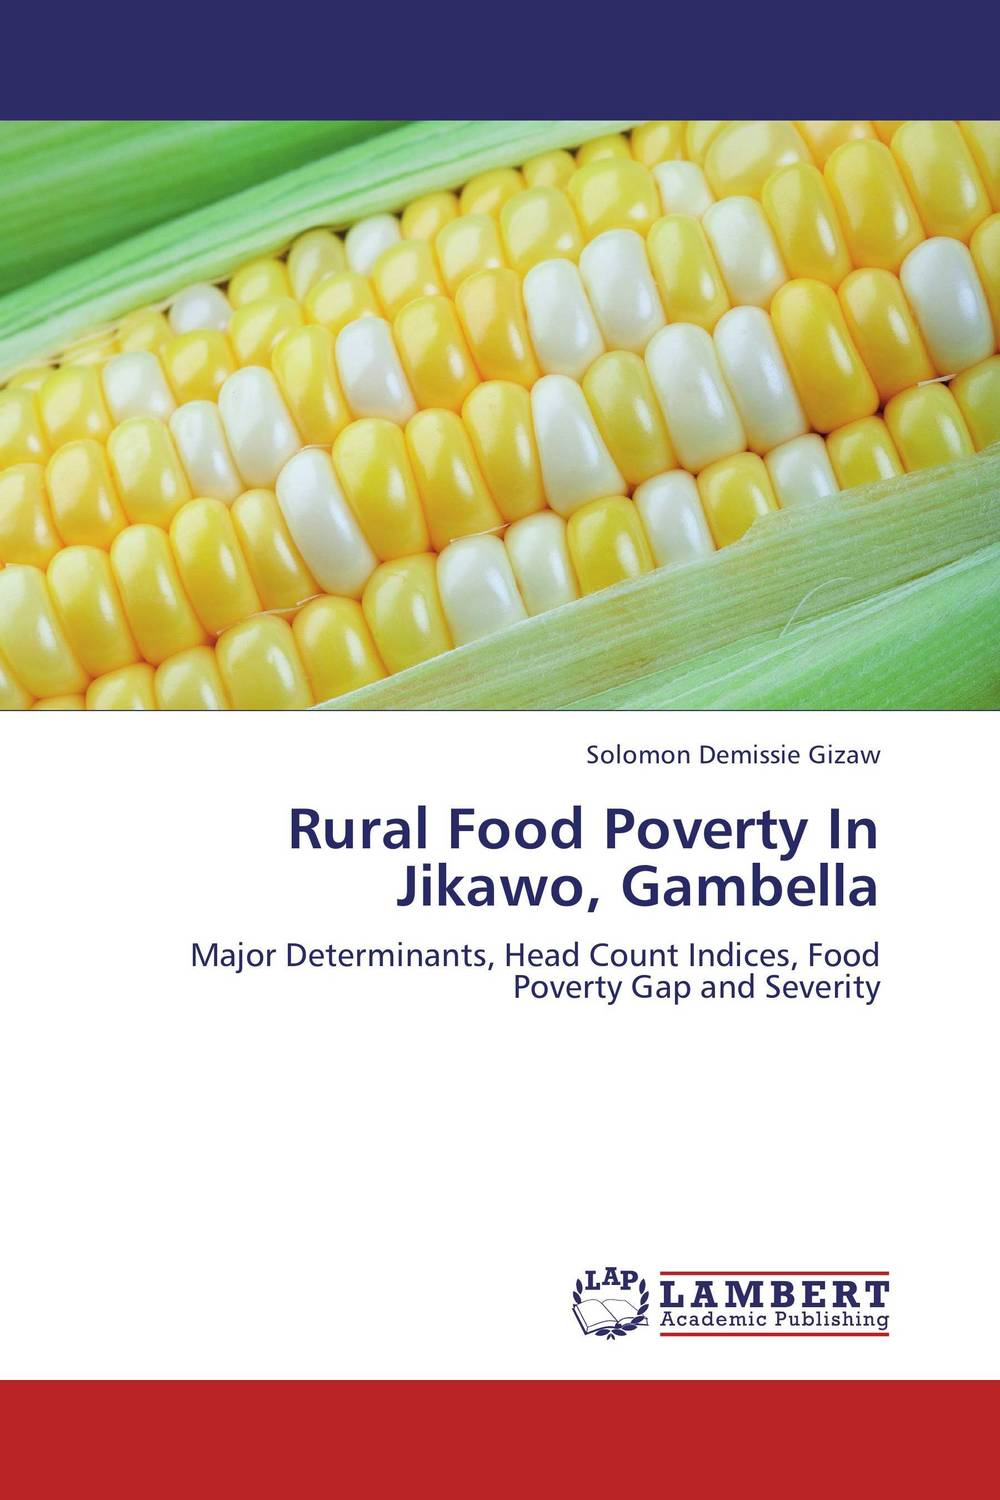 Фото Rural Food Poverty In Jikawo, Gambella cervical cancer in amhara region in ethiopia